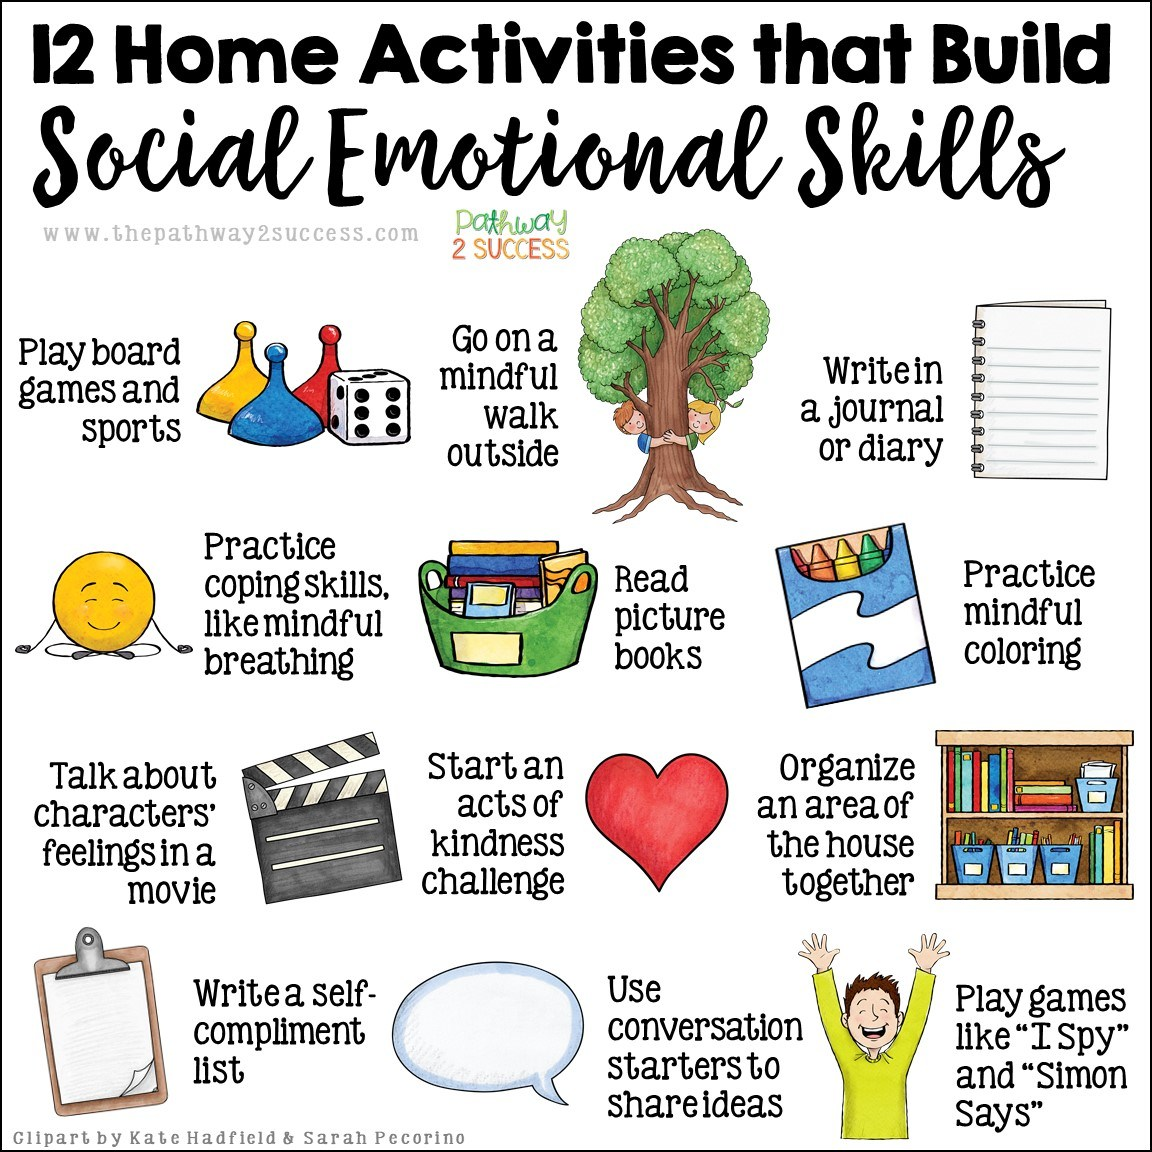 12 Home Activities that Build Social-Emotional Skills via @Pathwy2Success #SEL #parenting